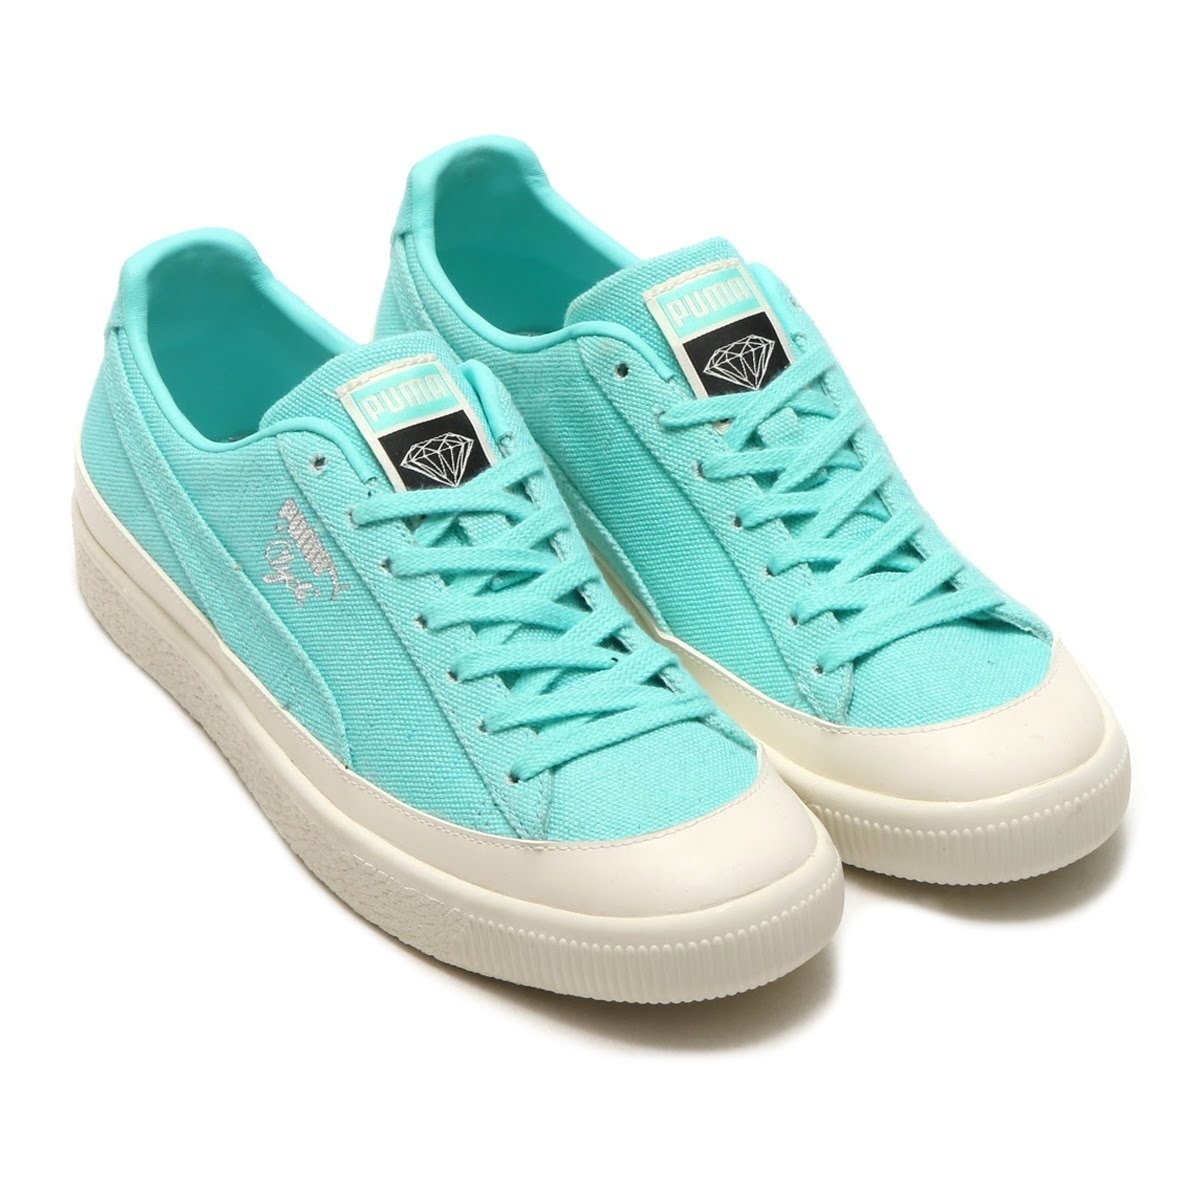 32e8c725c92 tenis puma clyde diamond - original 365651 01. Carregando zoom.